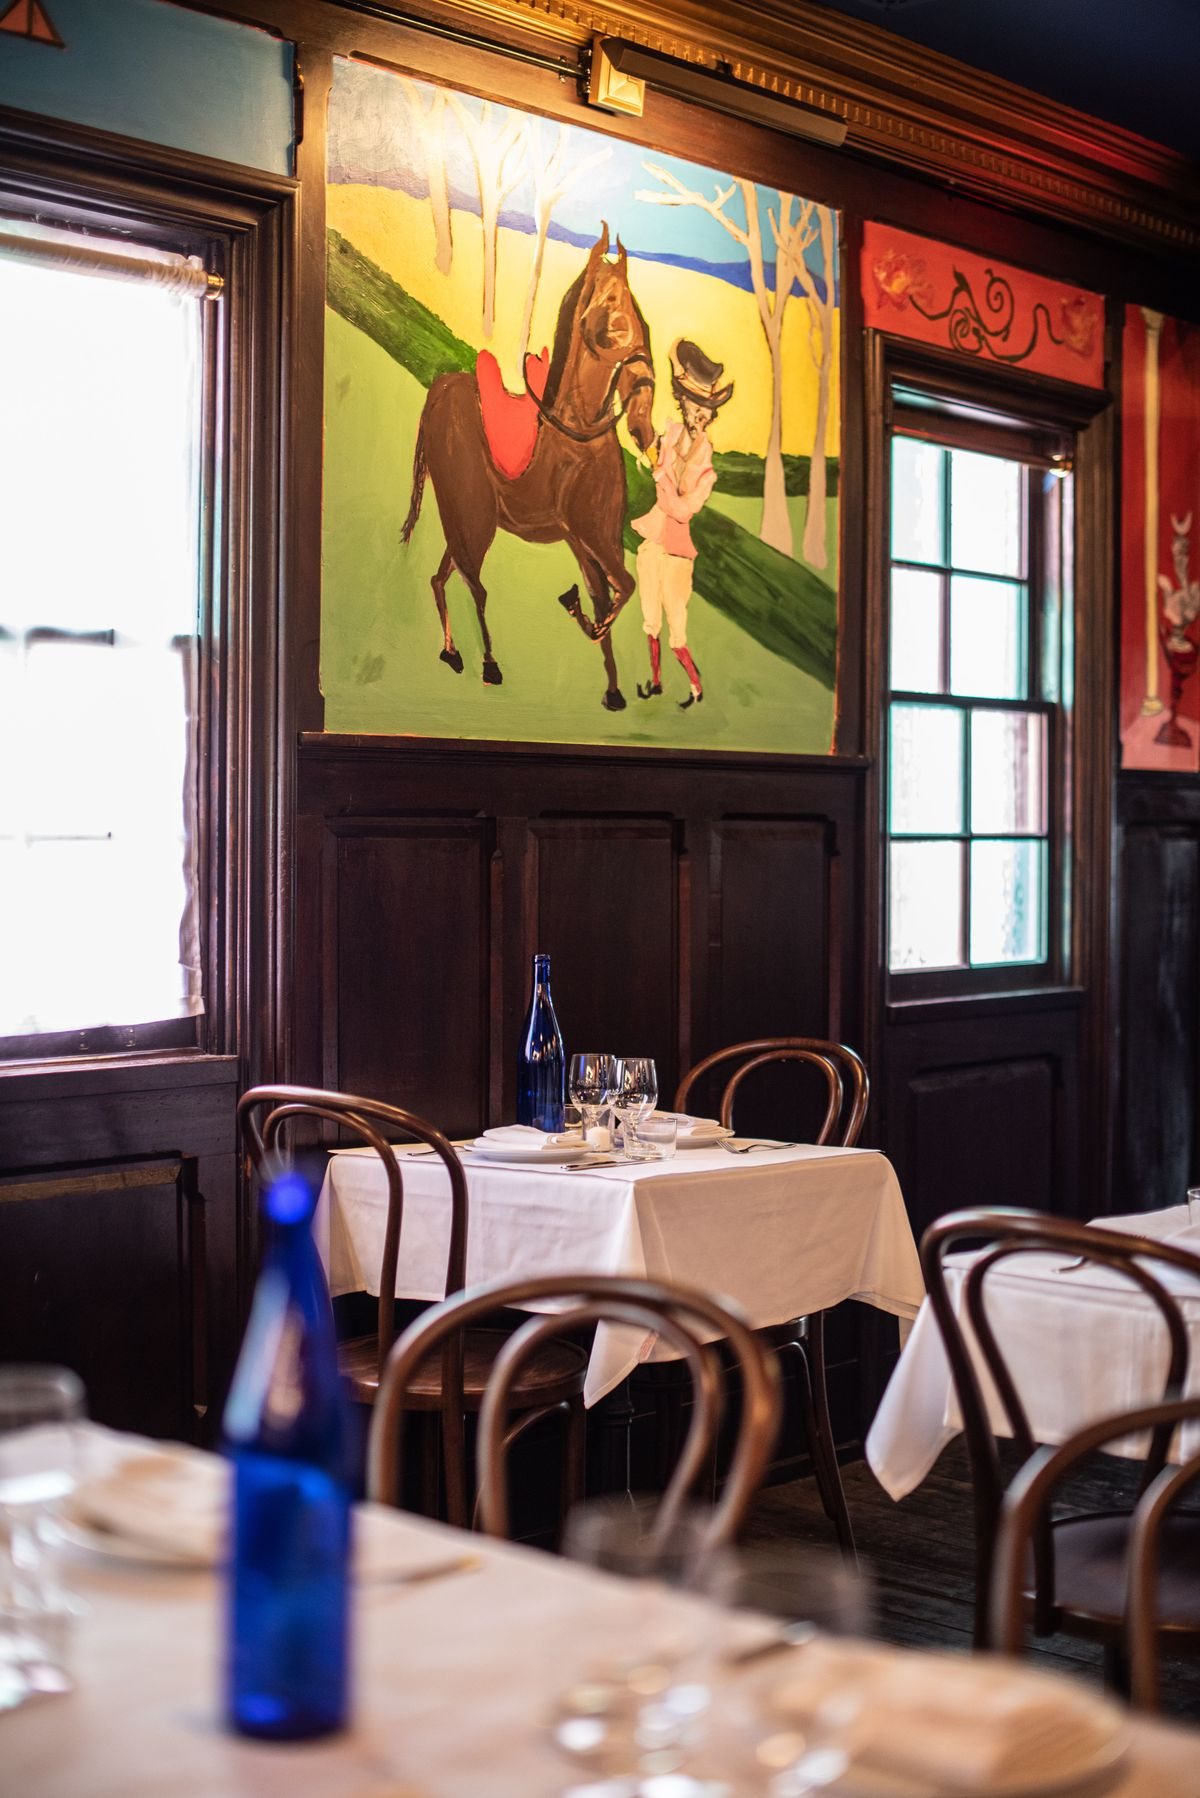 A lit, green painting of a horse inside of an aging restaurant dining room.